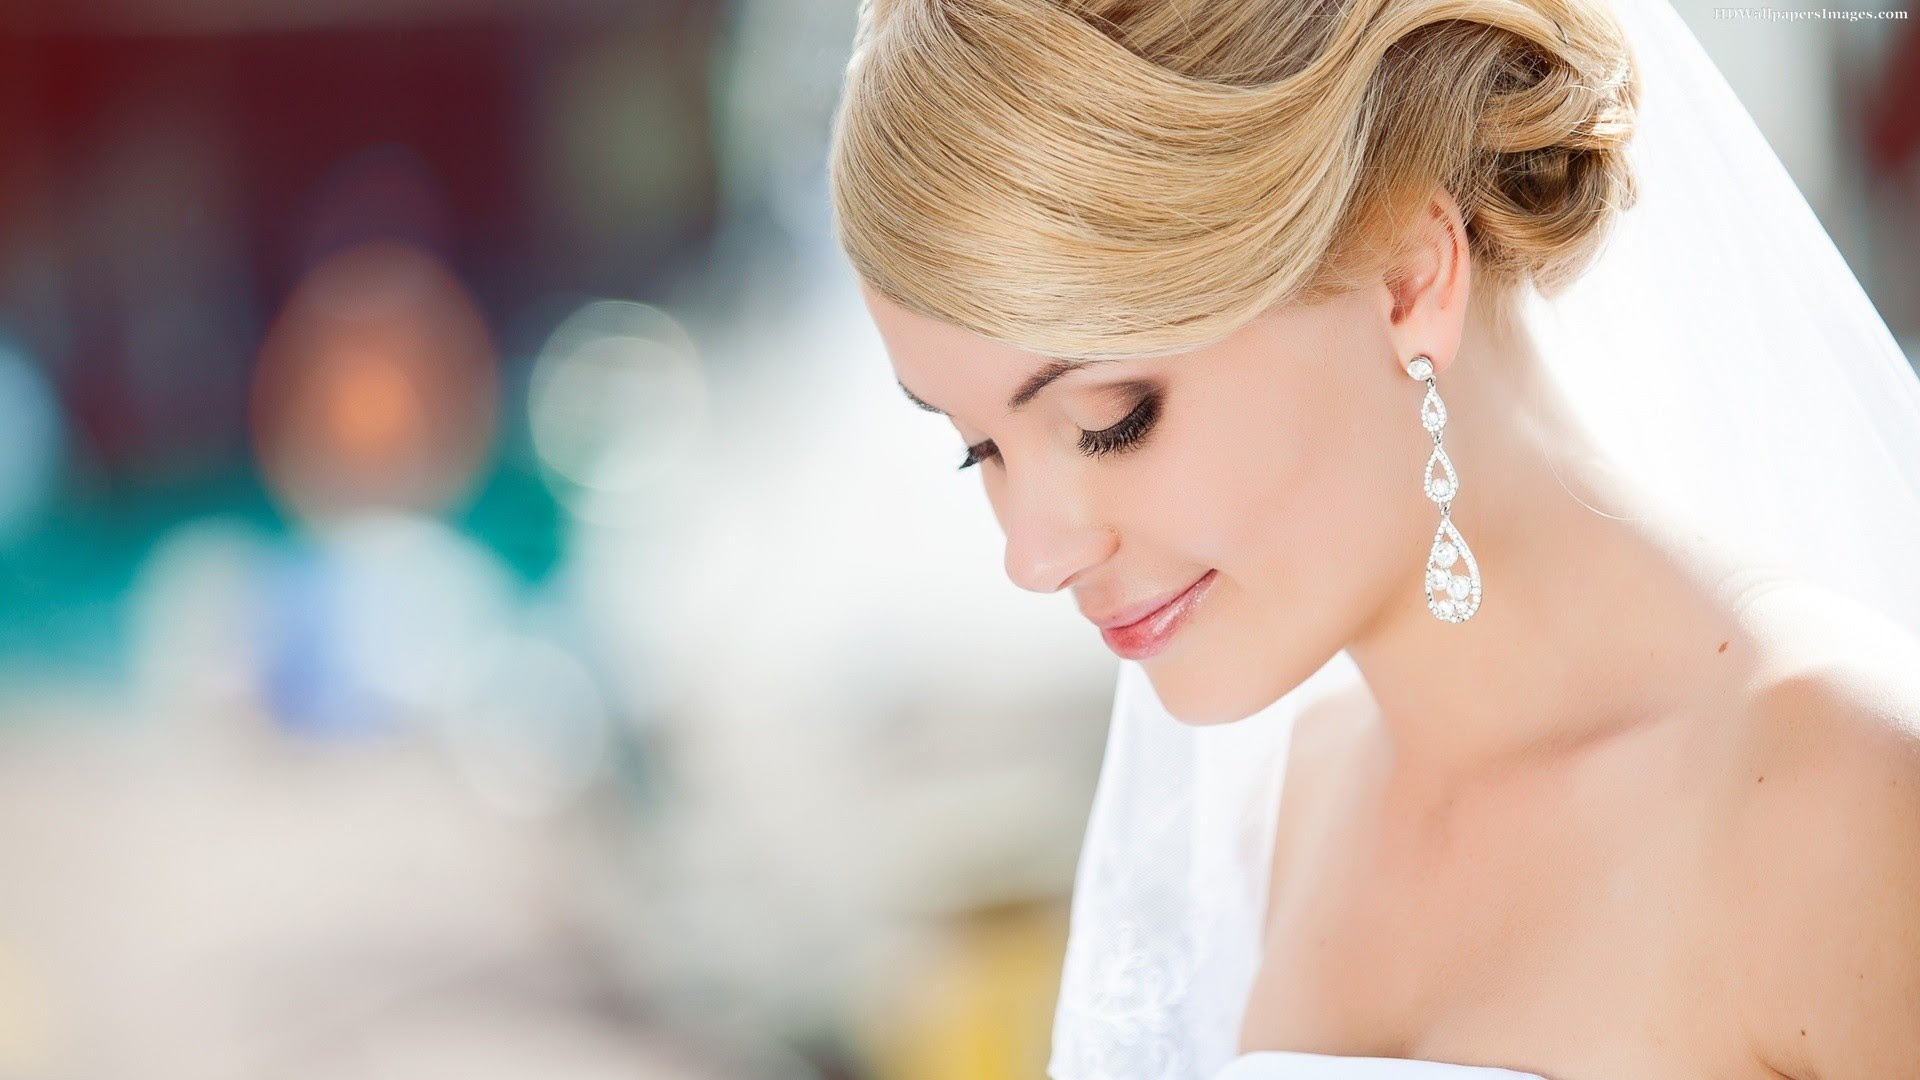 Wedding Bride Pose Images